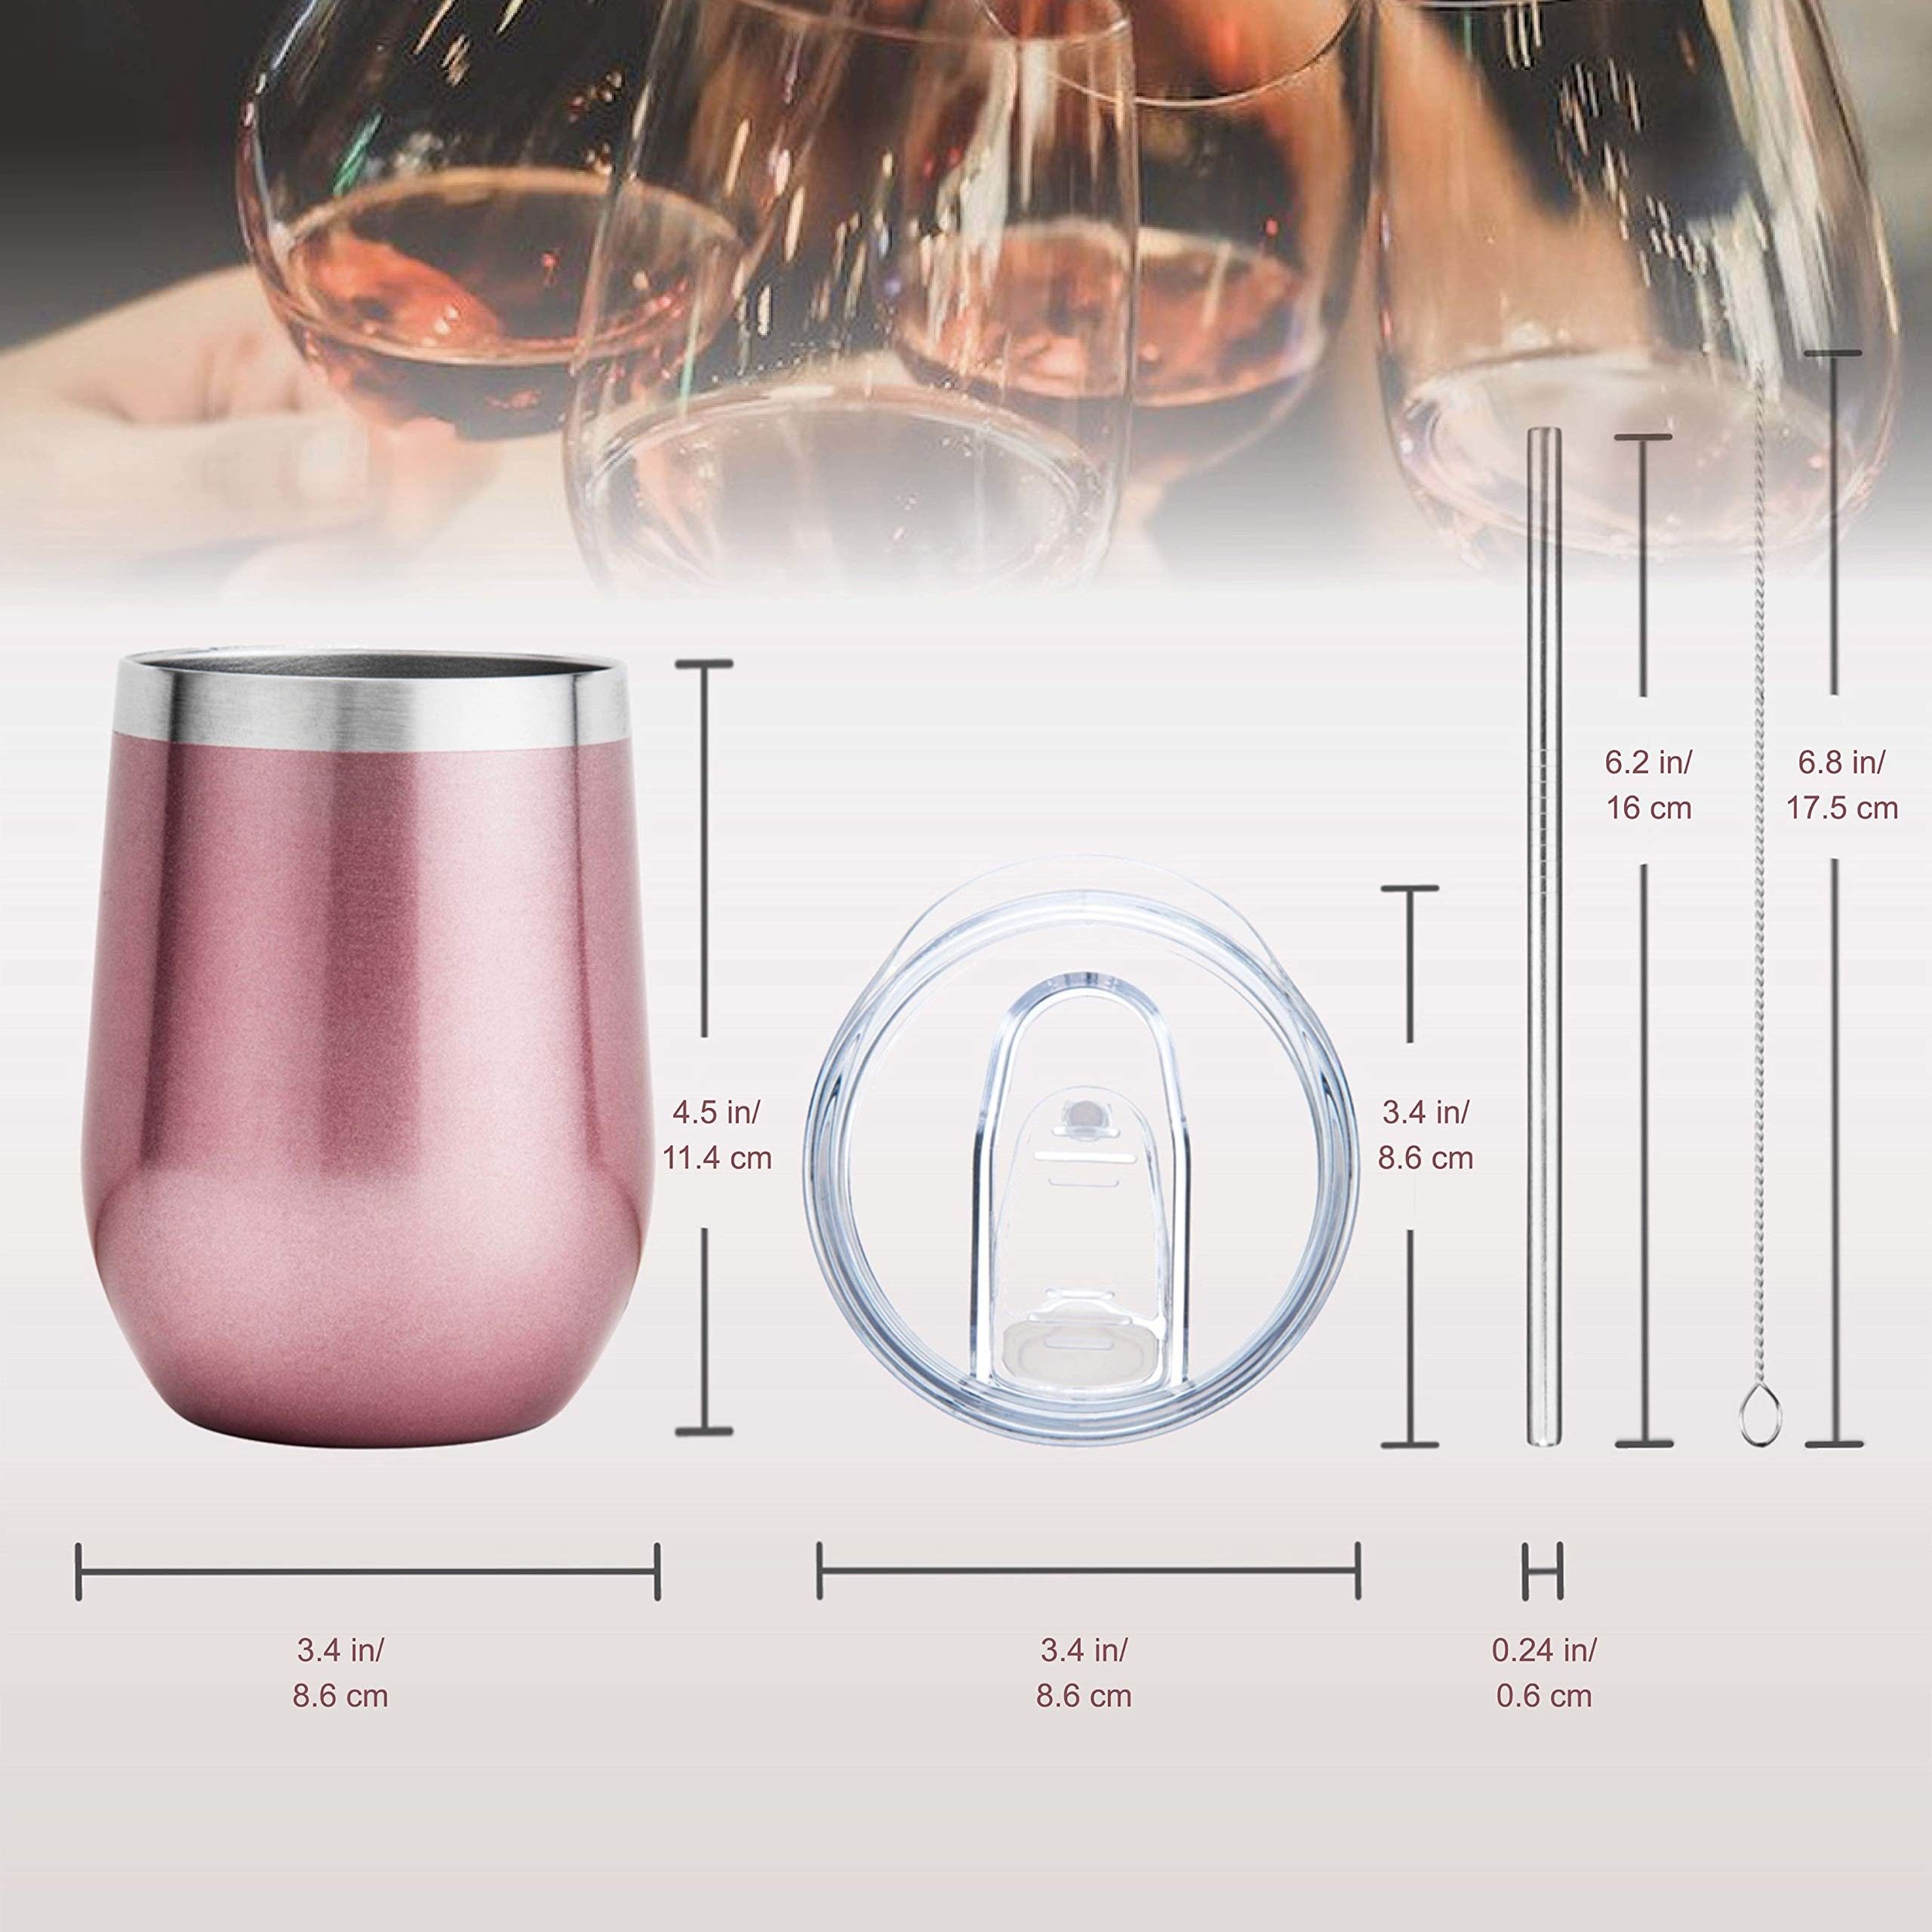 Carpe 12 oz Stemless Insulated Wine Glass Tumbler with Sliding Lid and Straw, Spill Proof Stainless Steel Double-Wall Wine Tumbler Cups for Champaign, Cocktail, Coffee, Drinks, Set of 2 (Rose Gold) by Carpe (Image #8)